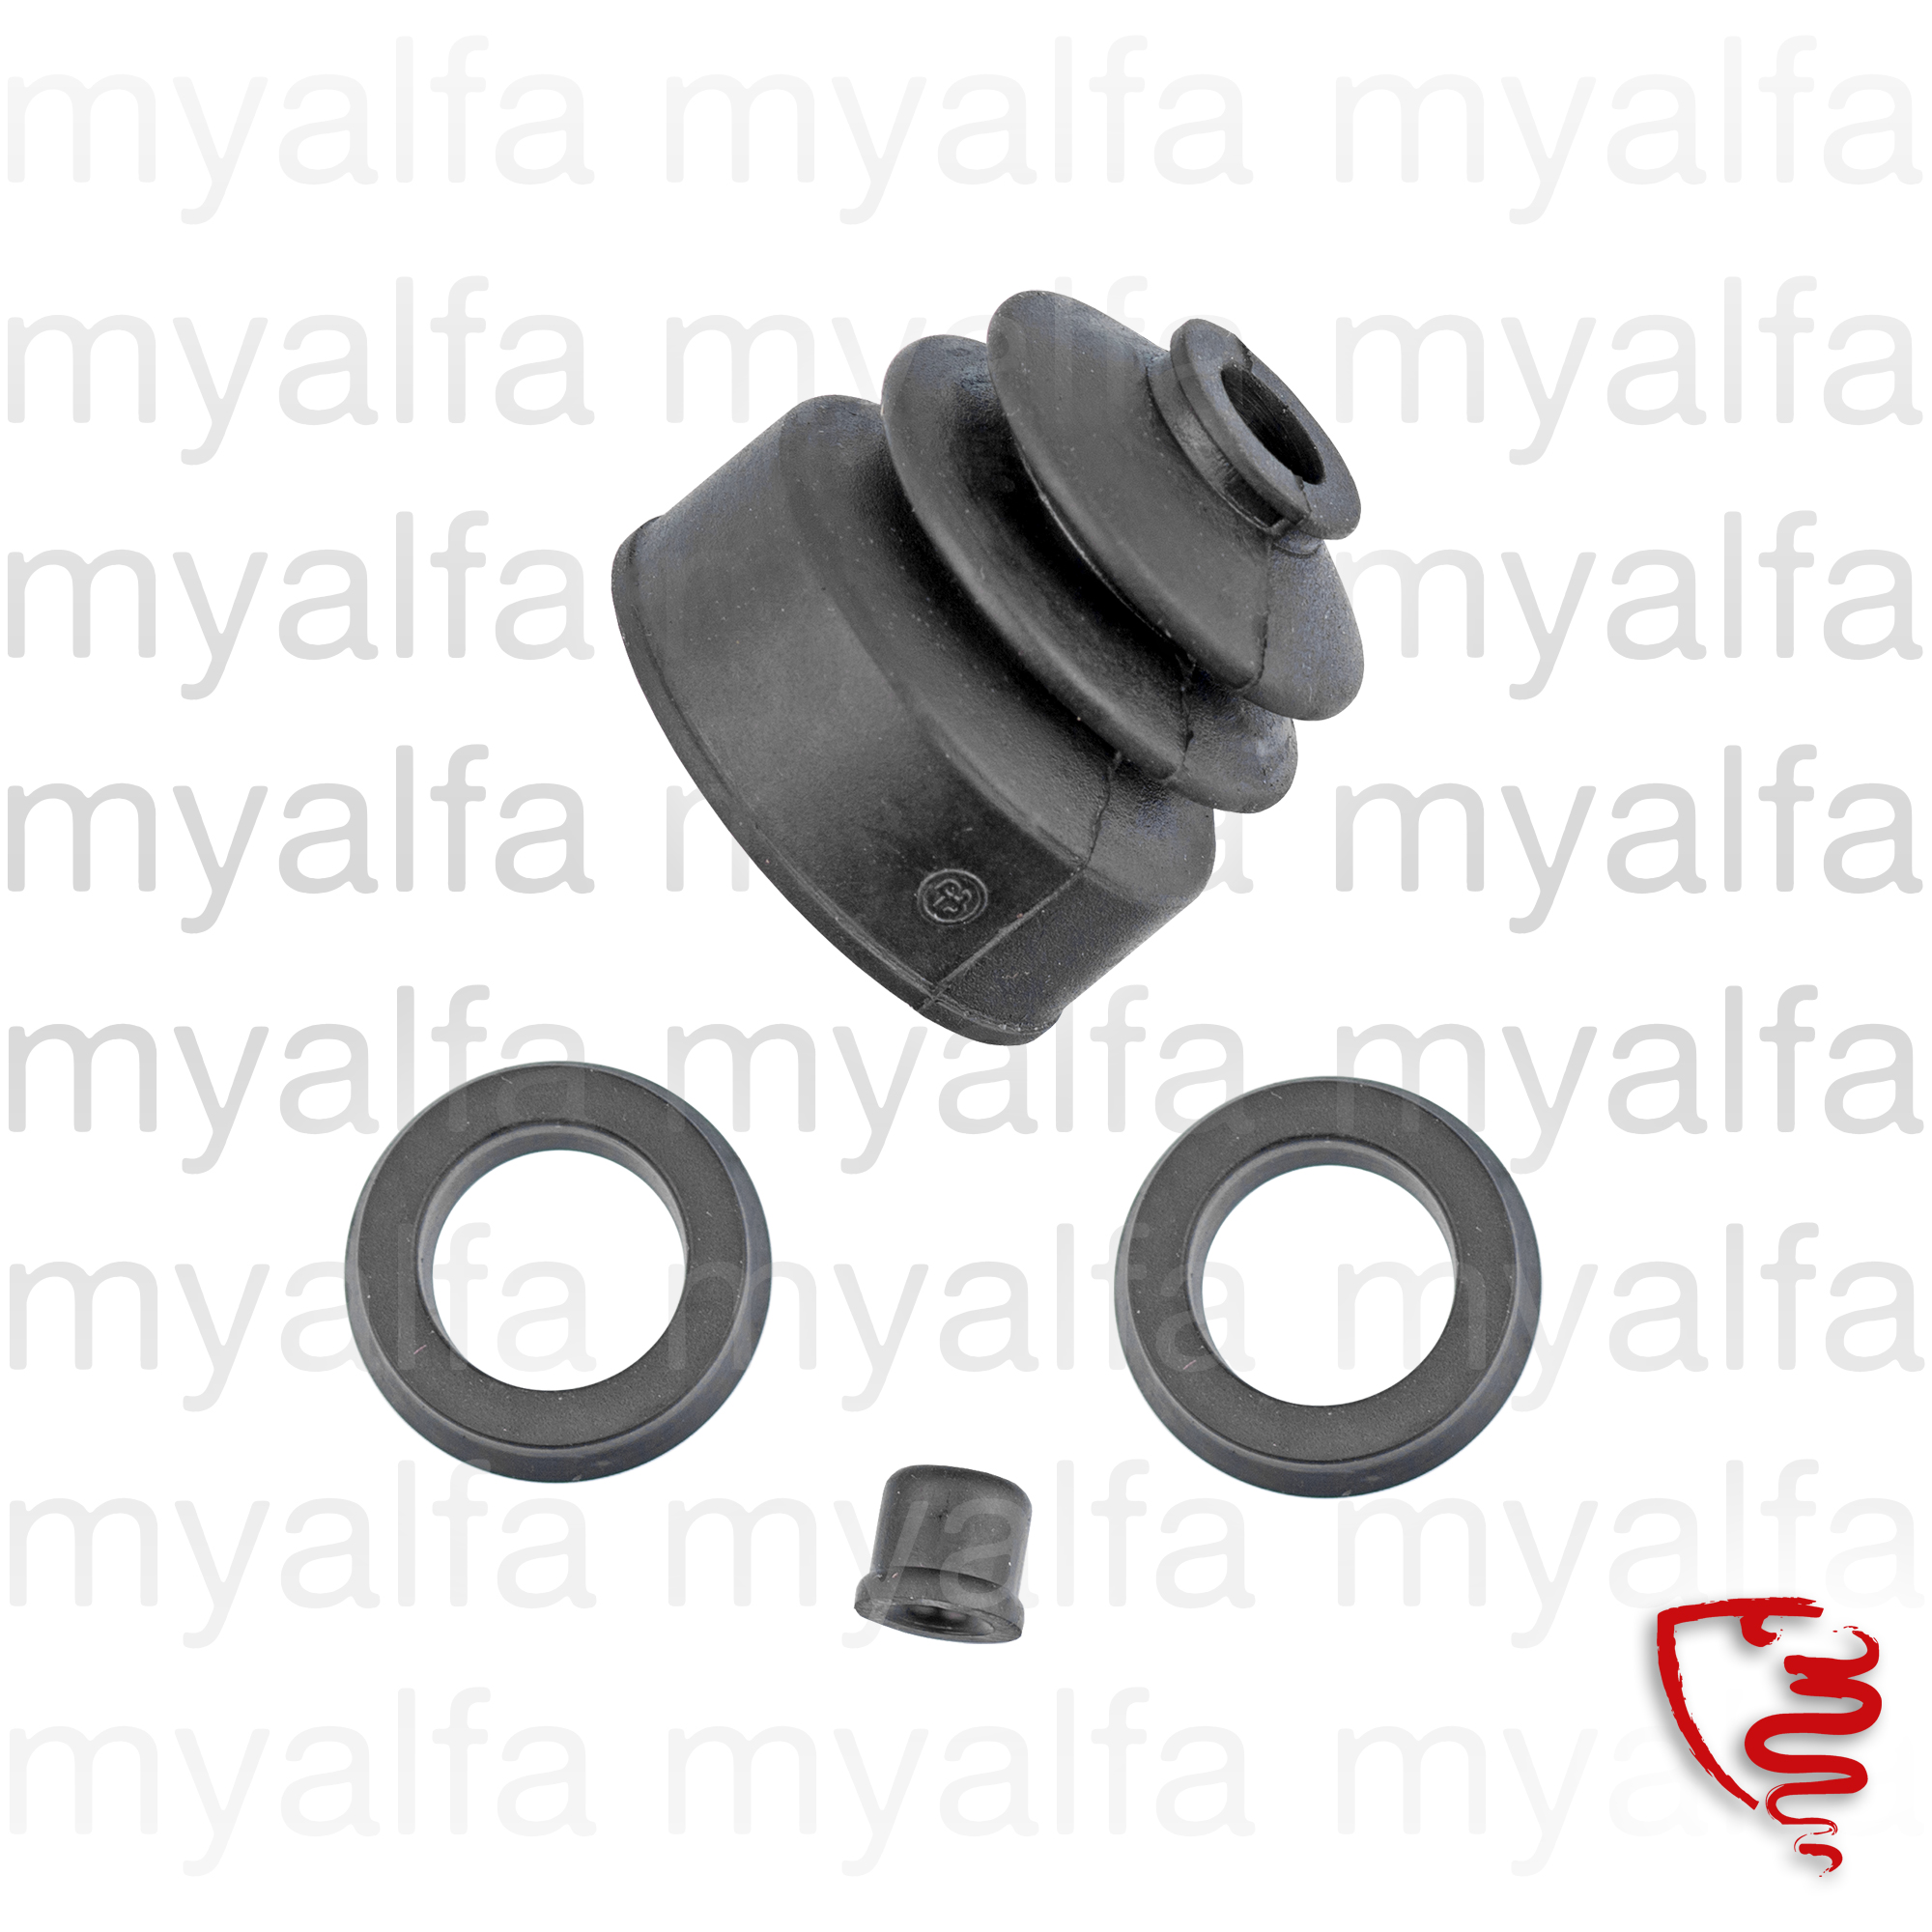 Repair kit Embragem Secondary pump for 105/115, Clutch, Hydraulic